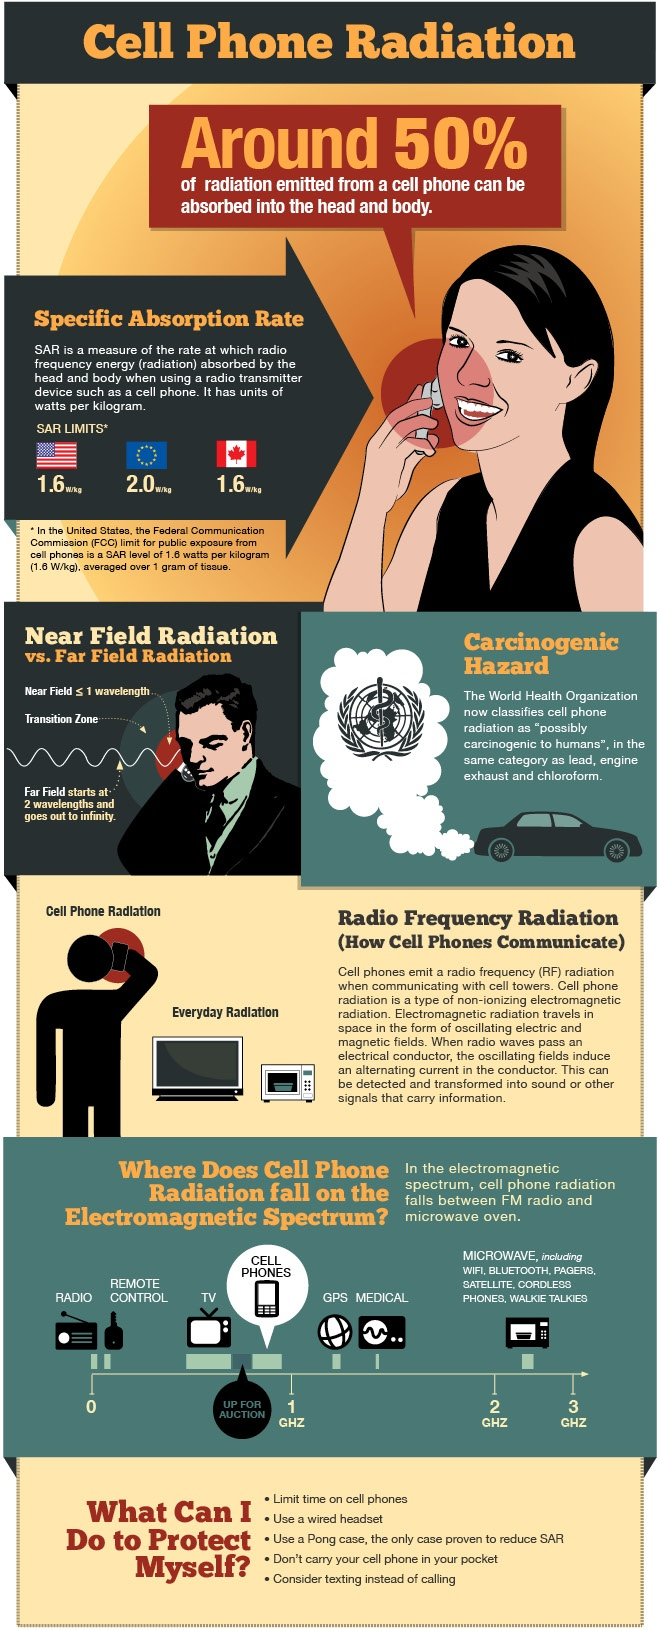 78+ images about Cell Phone Radiation Pics on Pinterest ...